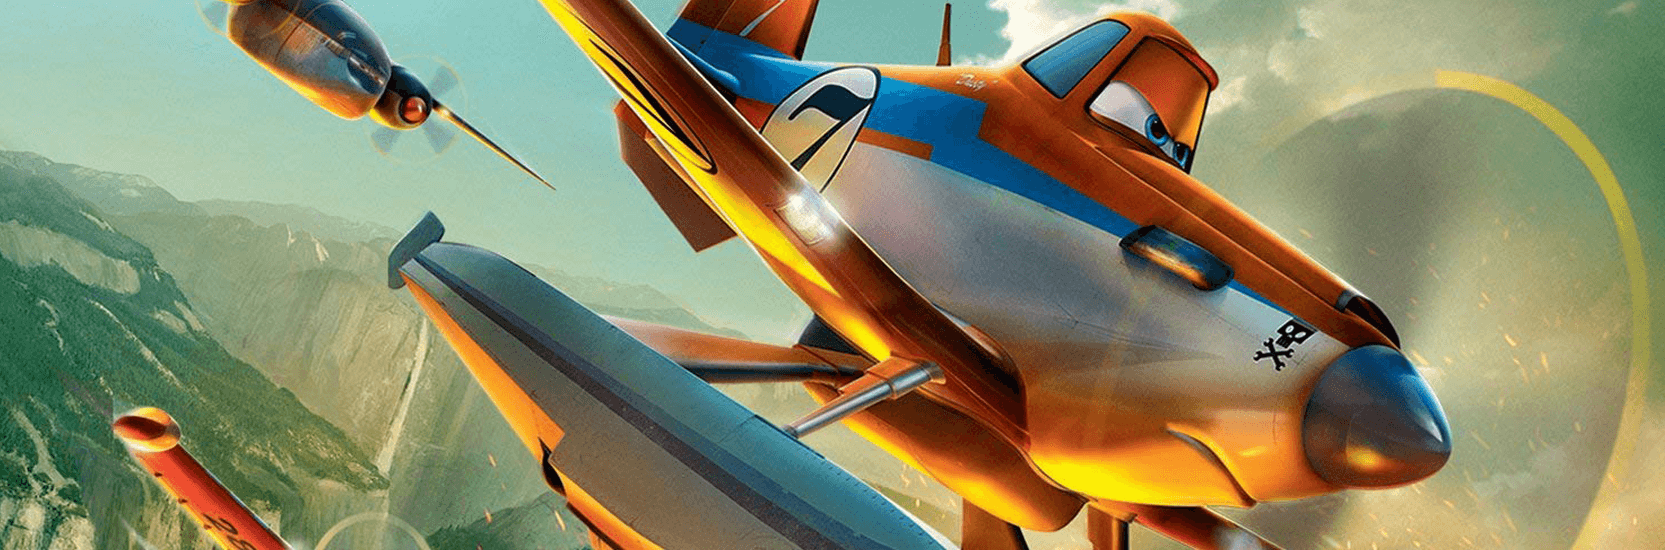 "Premier teaser pour ""Planes: Fire and Rescue"""